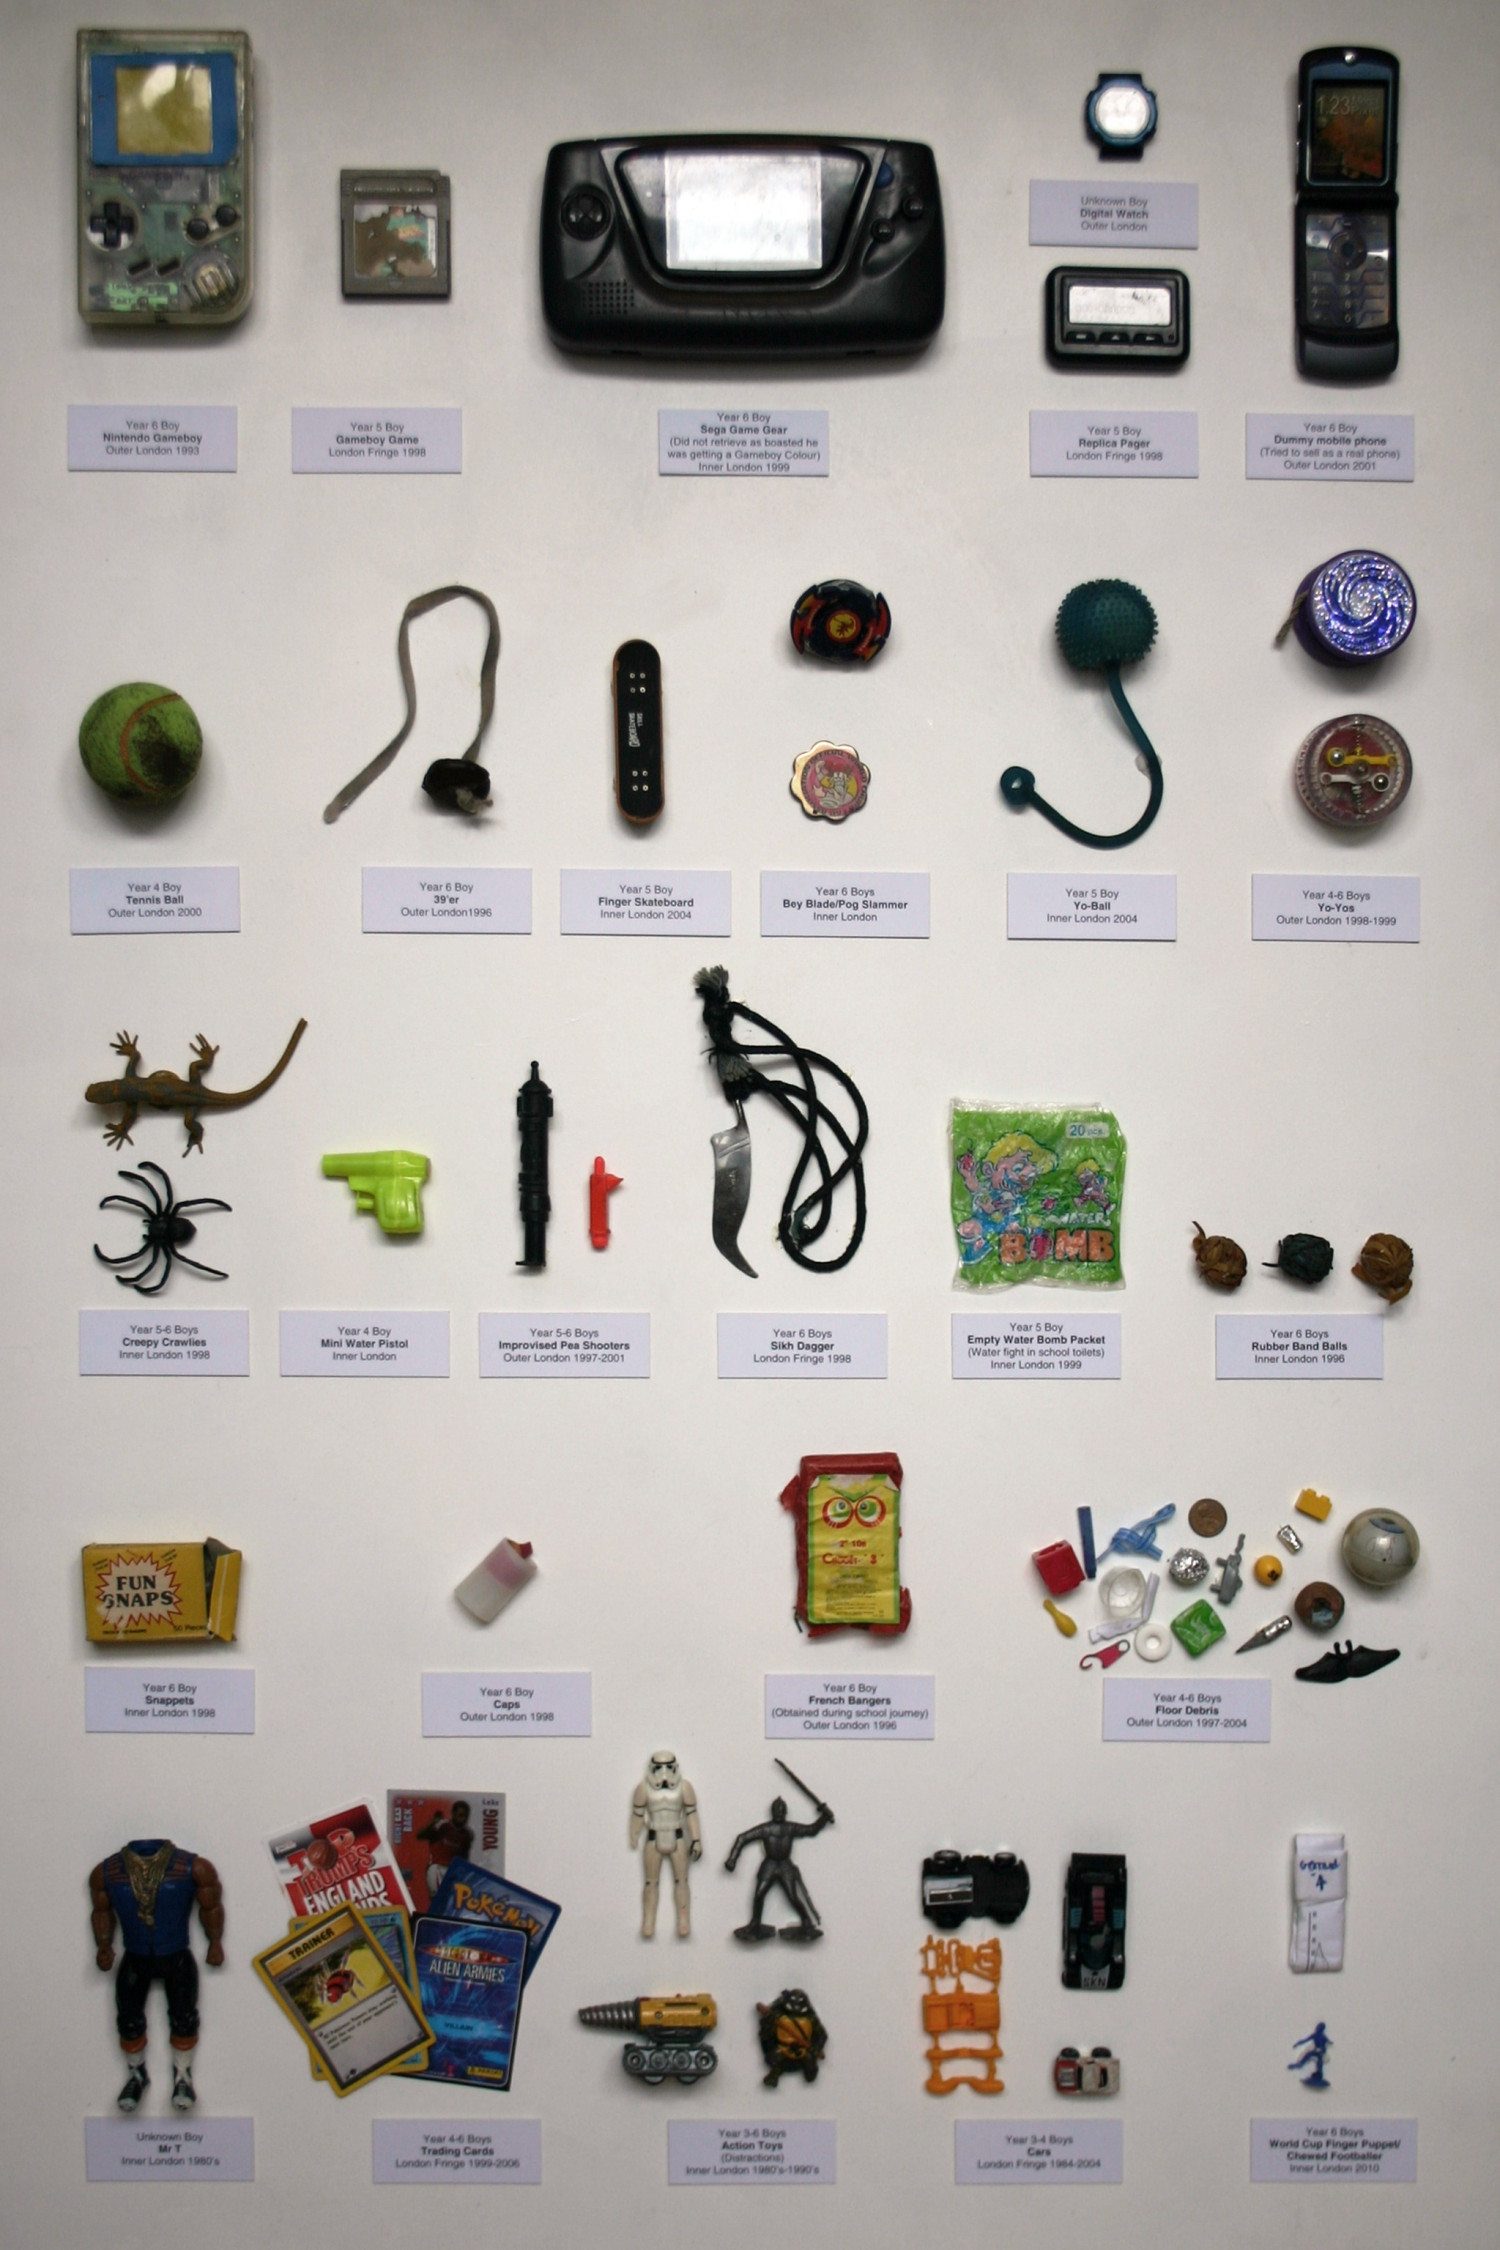 A British Teacher's Confiscated Toys Over 30 Years Infographic